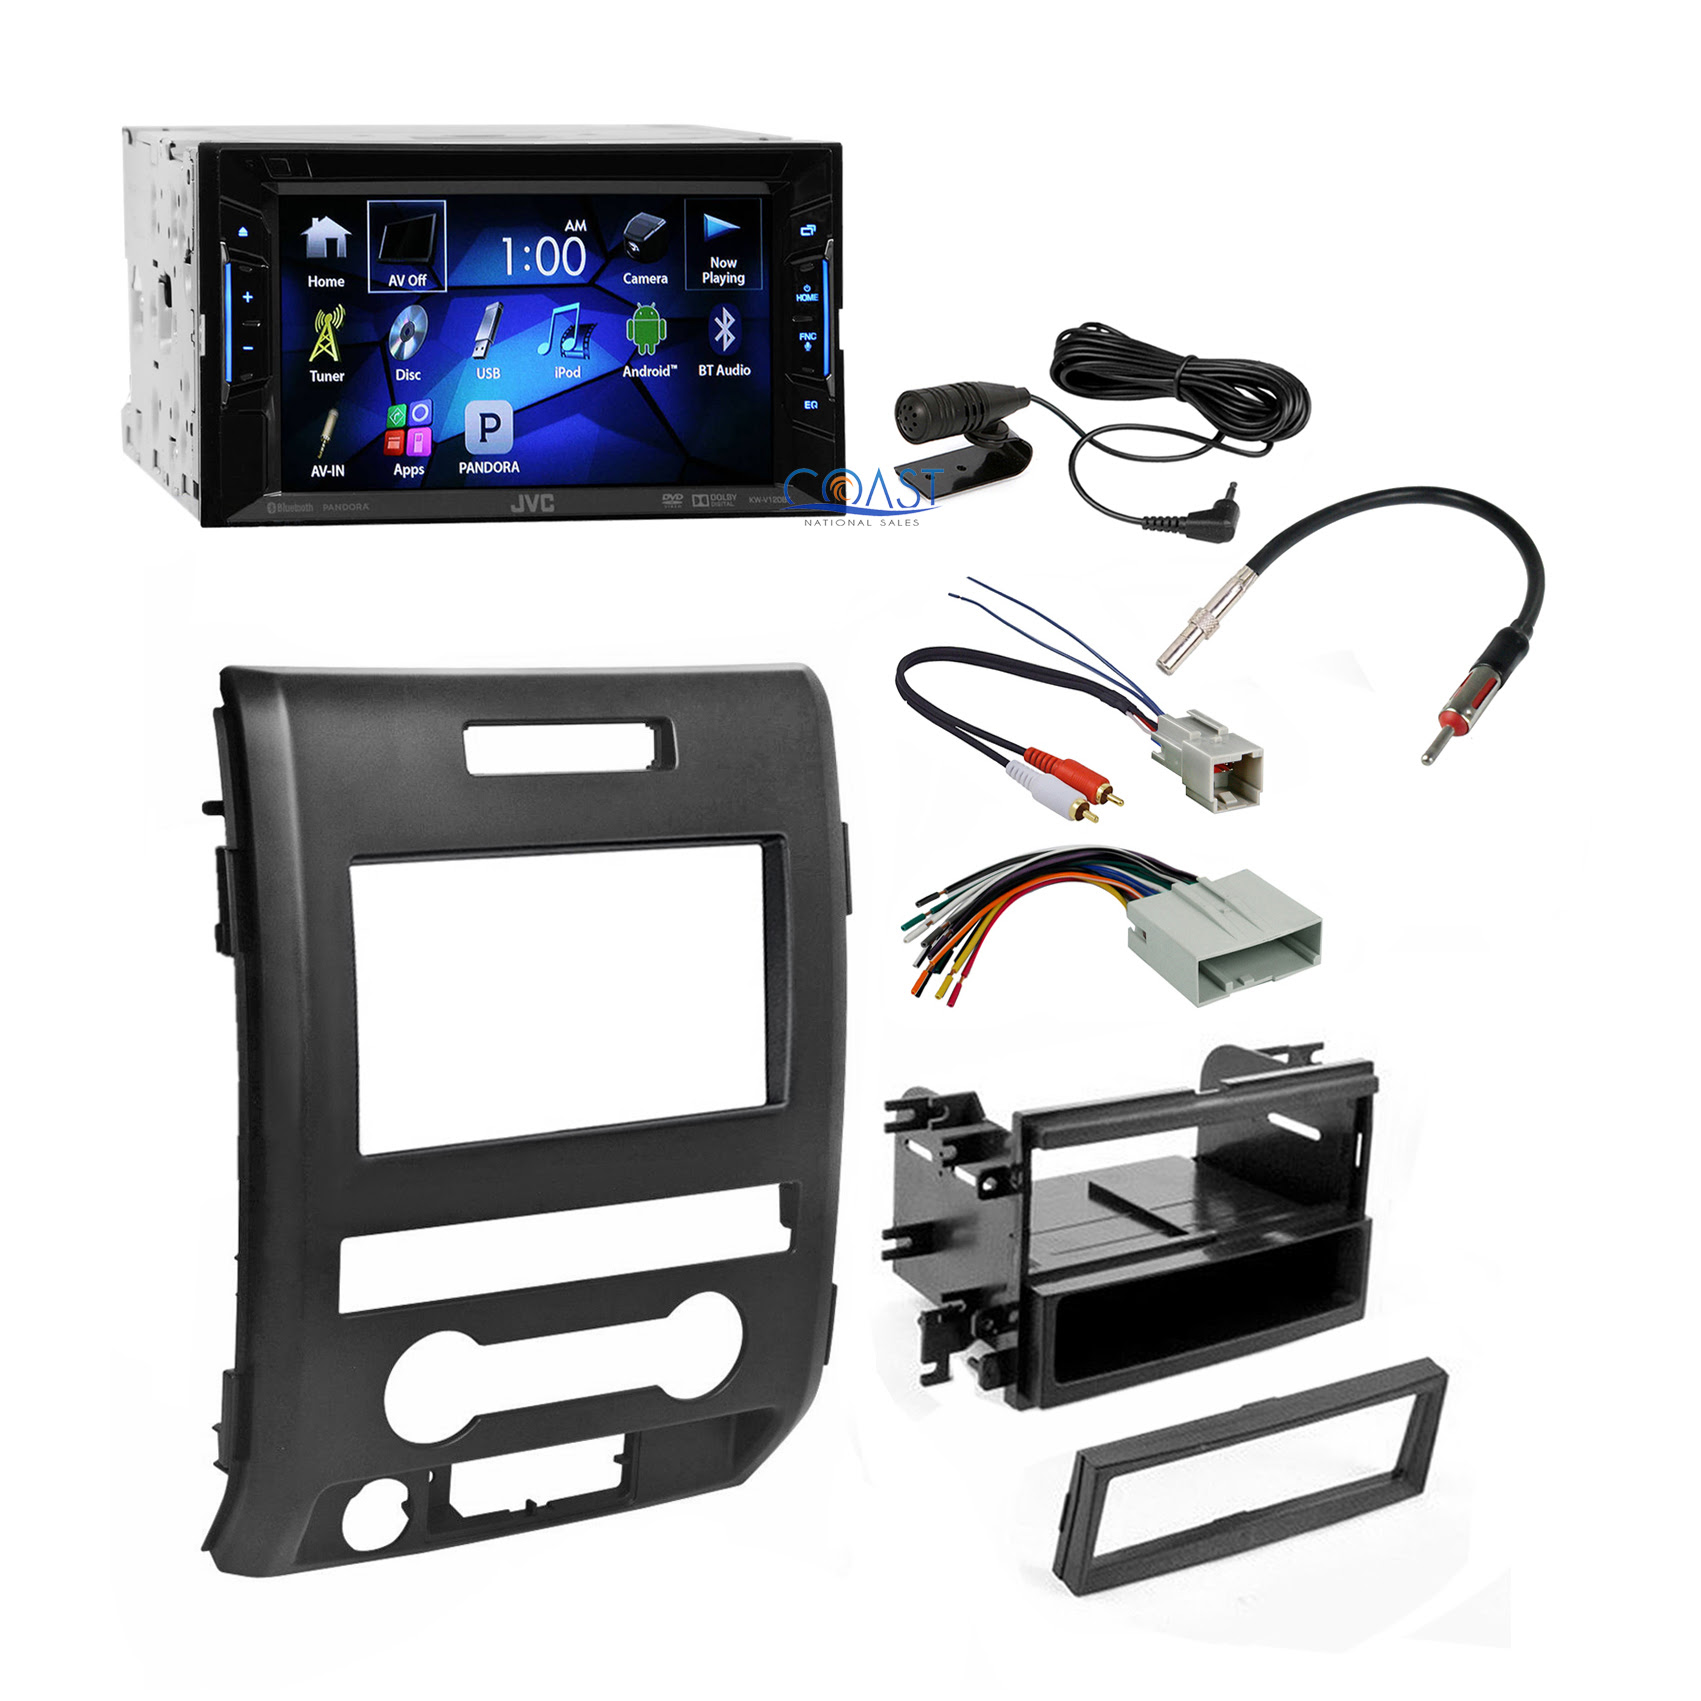 27 Bosion 62 Inch Double Din Wiring Diagram